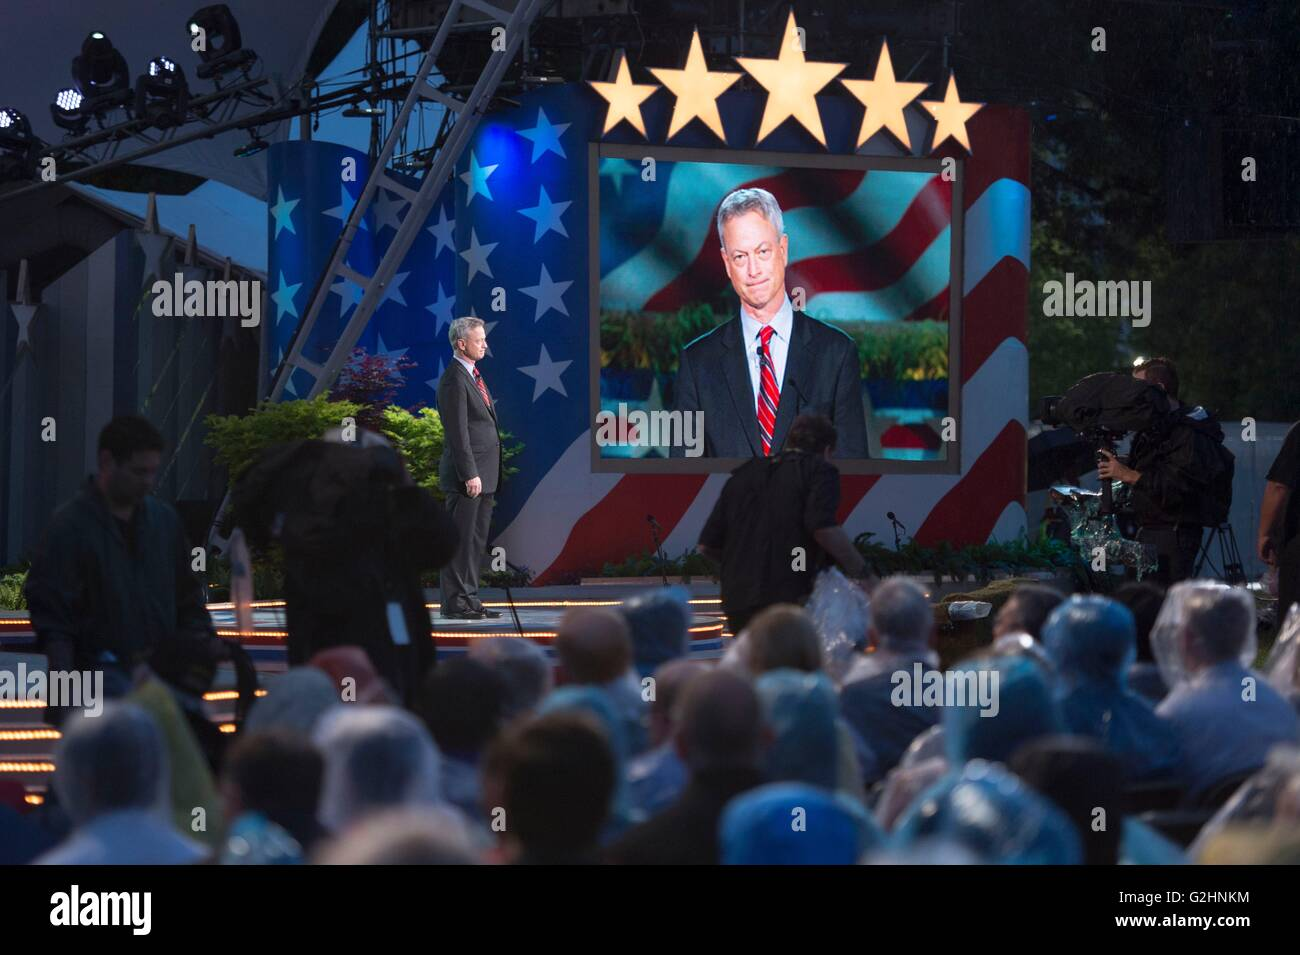 Actor Gary Sinise host the National Memorial Day Concert May 29, 2016 in Washington, D.C - Stock Image